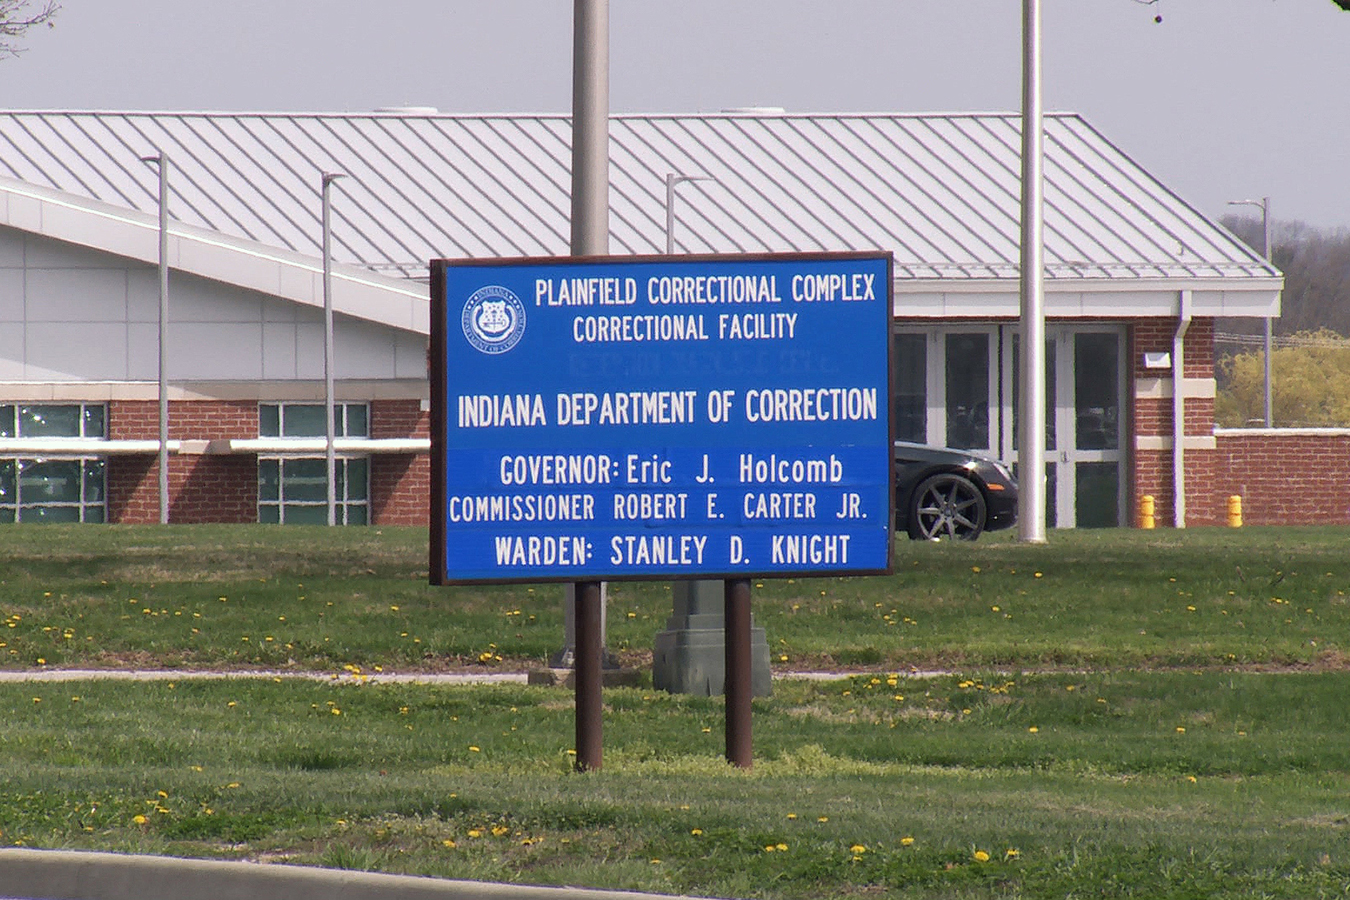 When Prisons Are 'Petri Dishes,' Inmates Can't Guard Against COVID-19, They Say